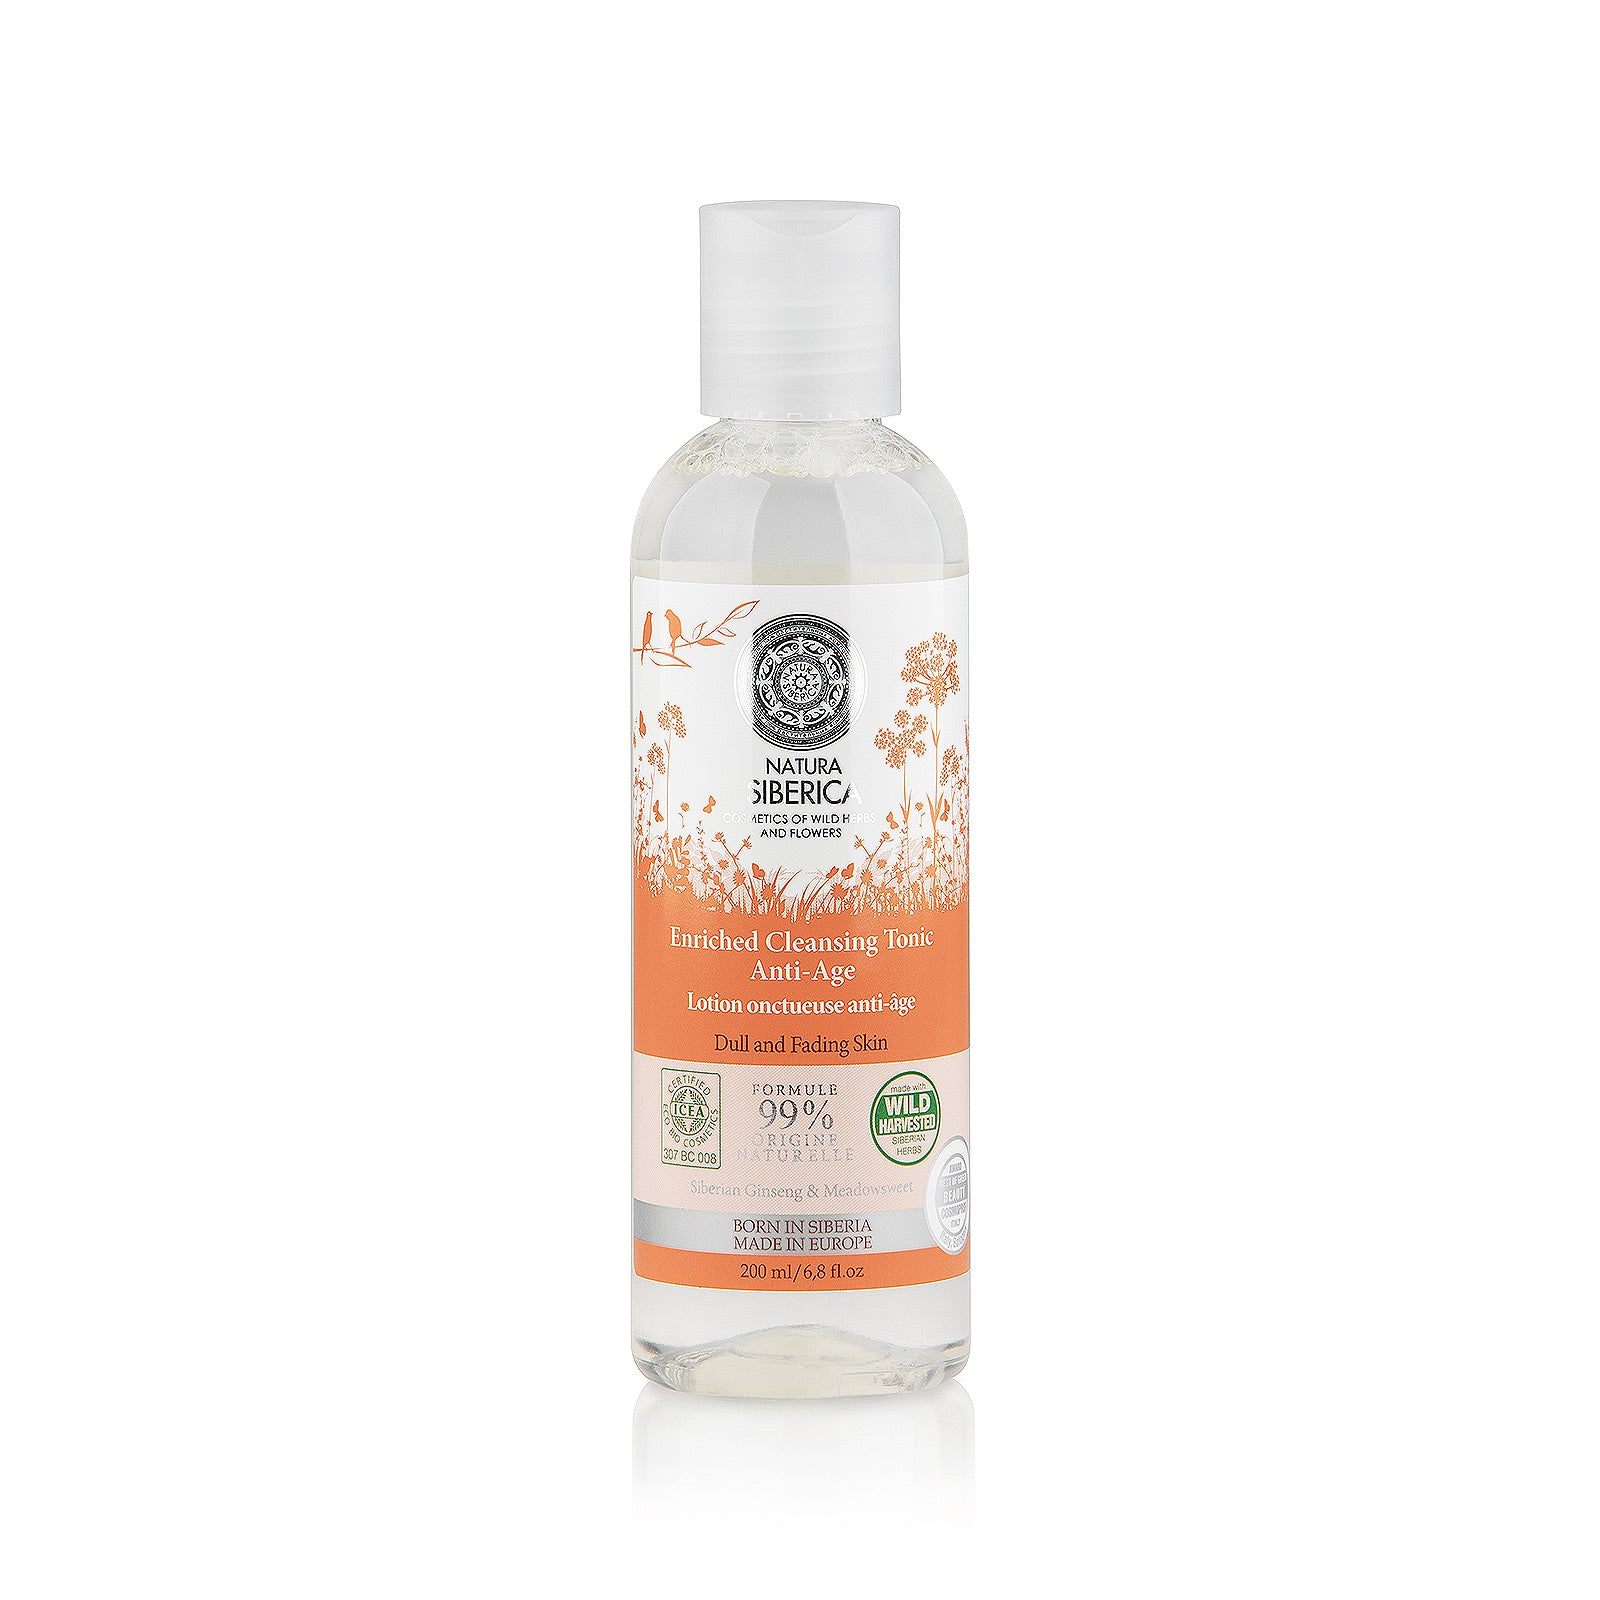 Cleansing Tonic, anti-ageing, 200 ml